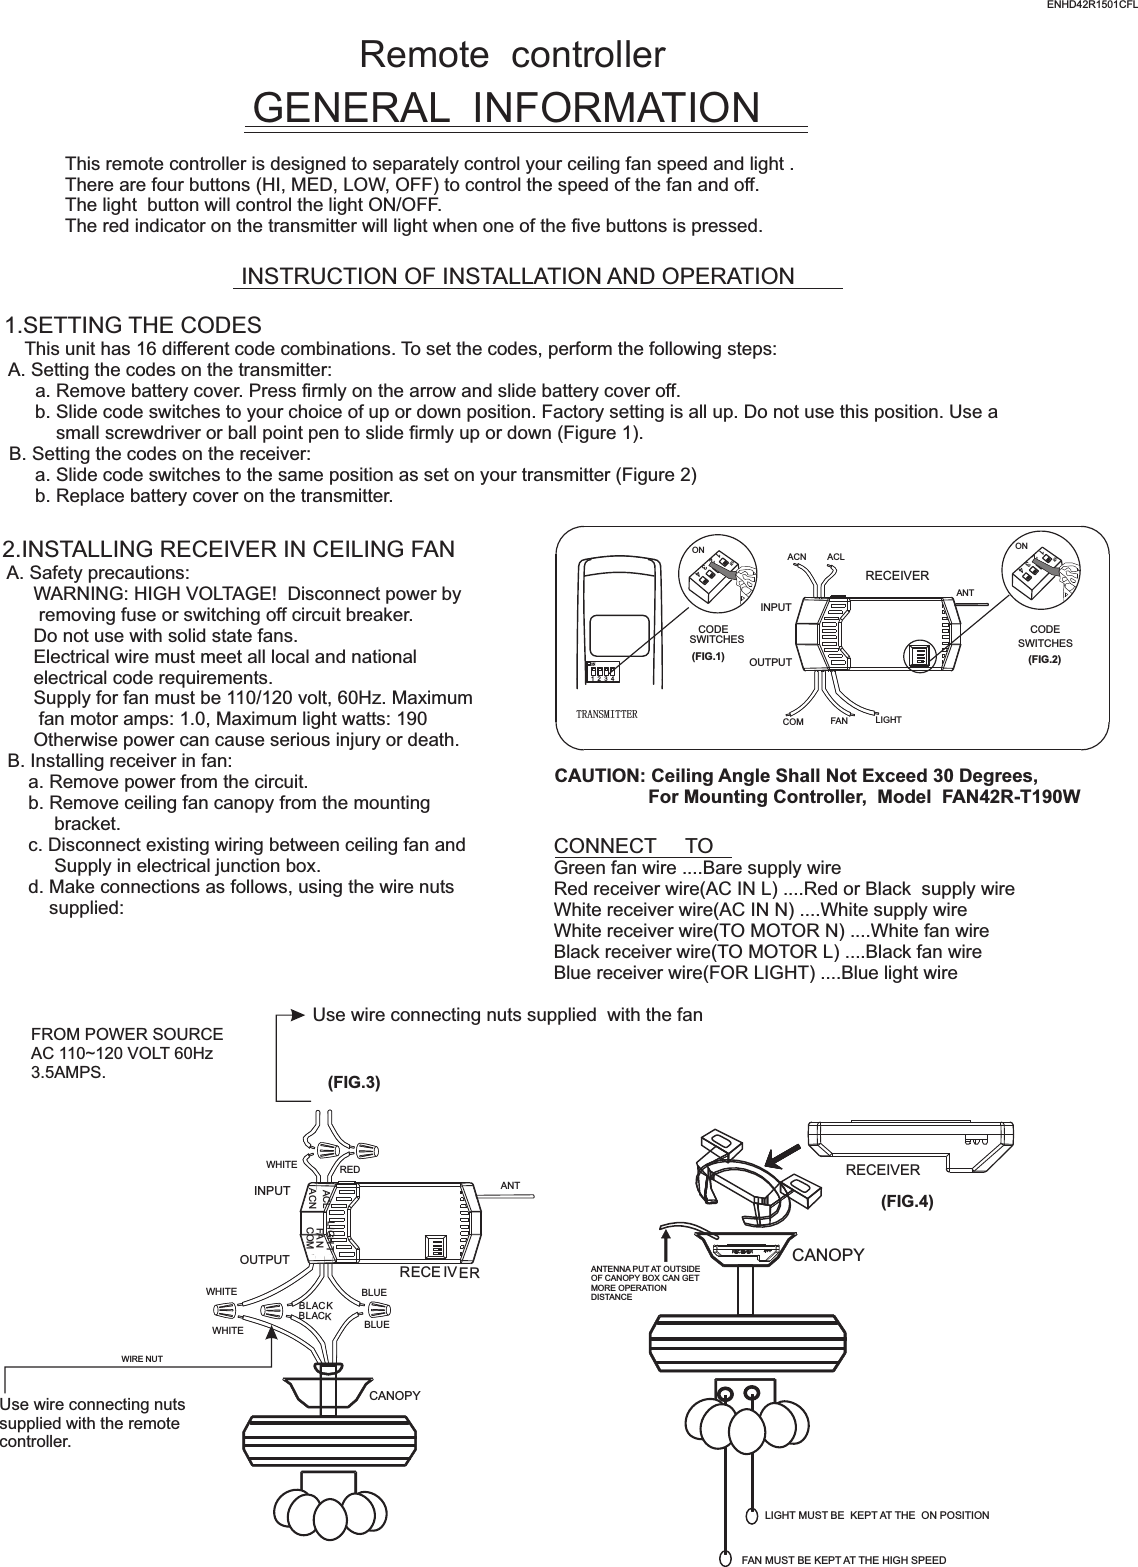 How Do I Wire A Light Switch And A Receptacle In The Same Box Manual Guide